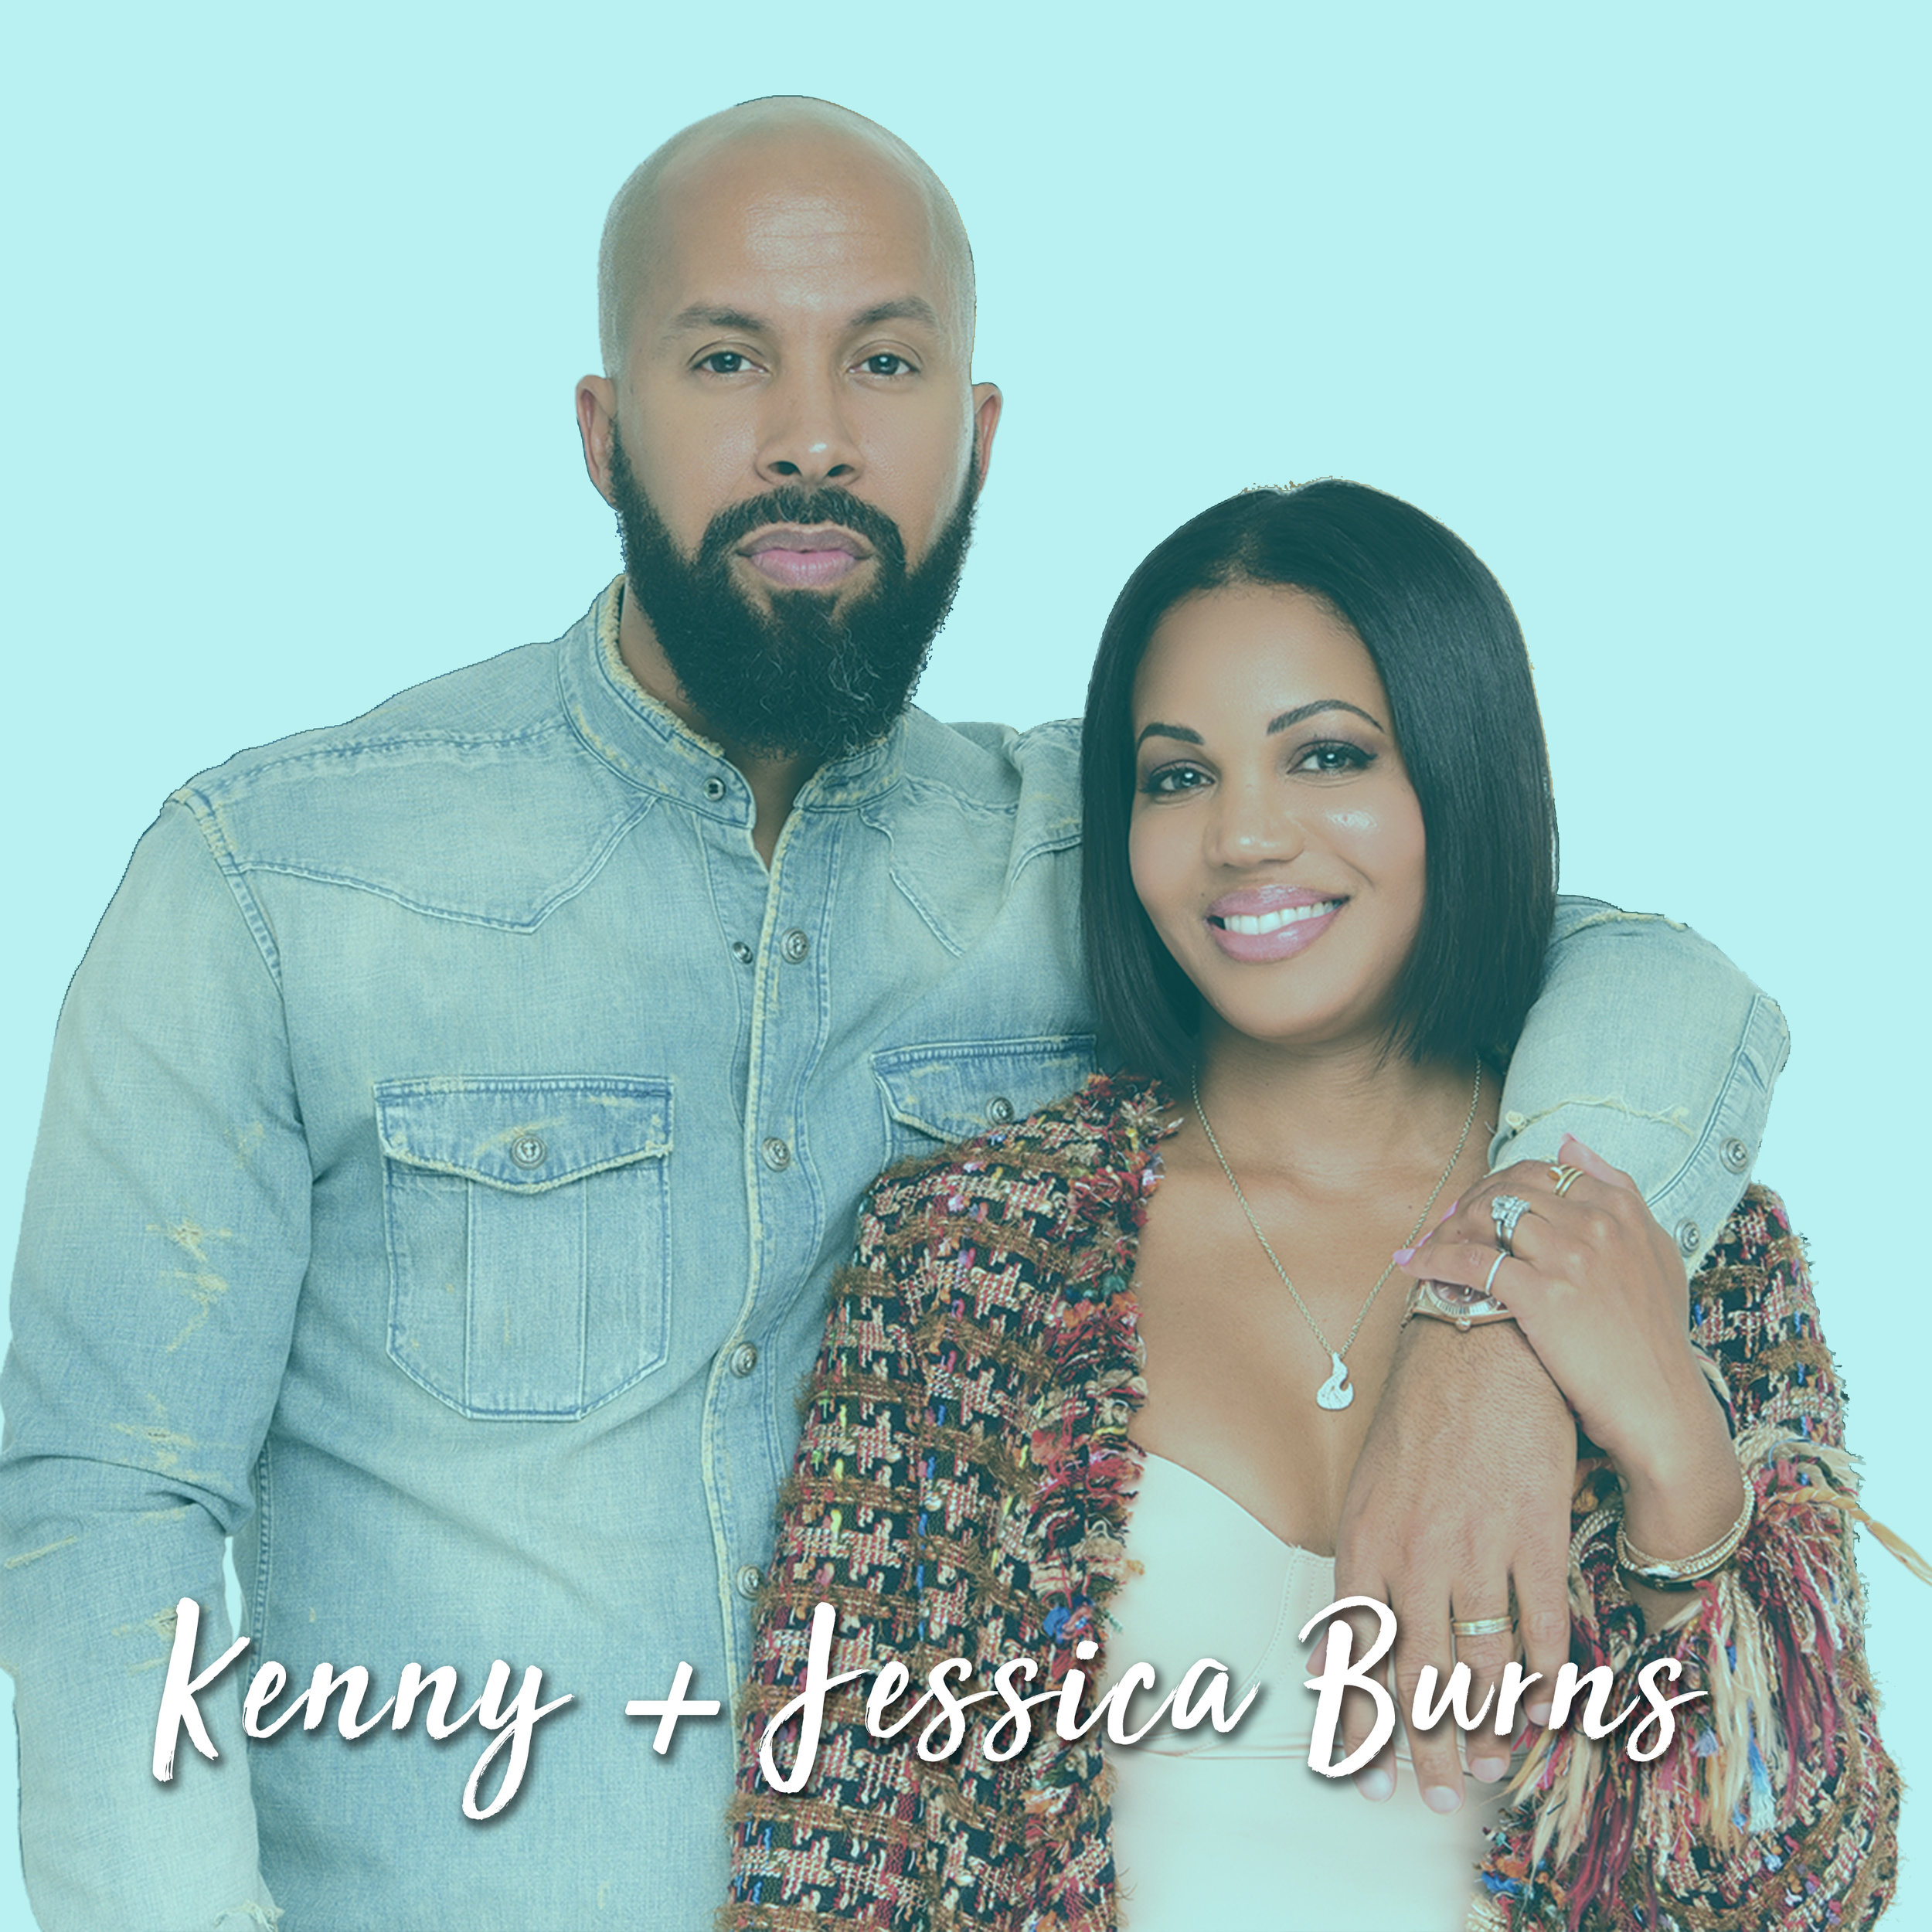 Kenny & Jessica website.jpg